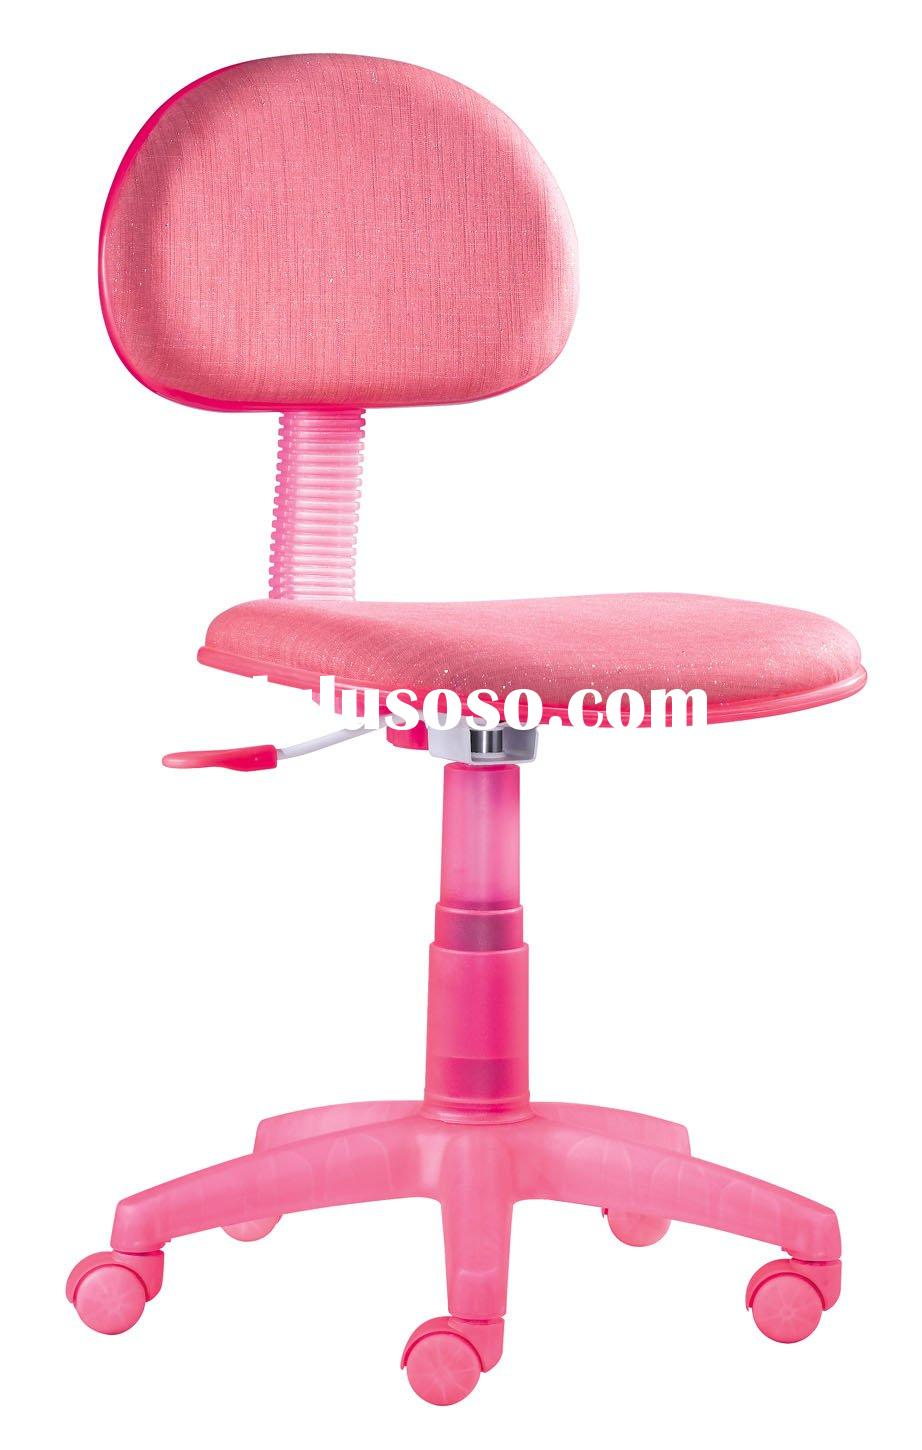 Kids Desk Chairs Pink | Decoration Empire